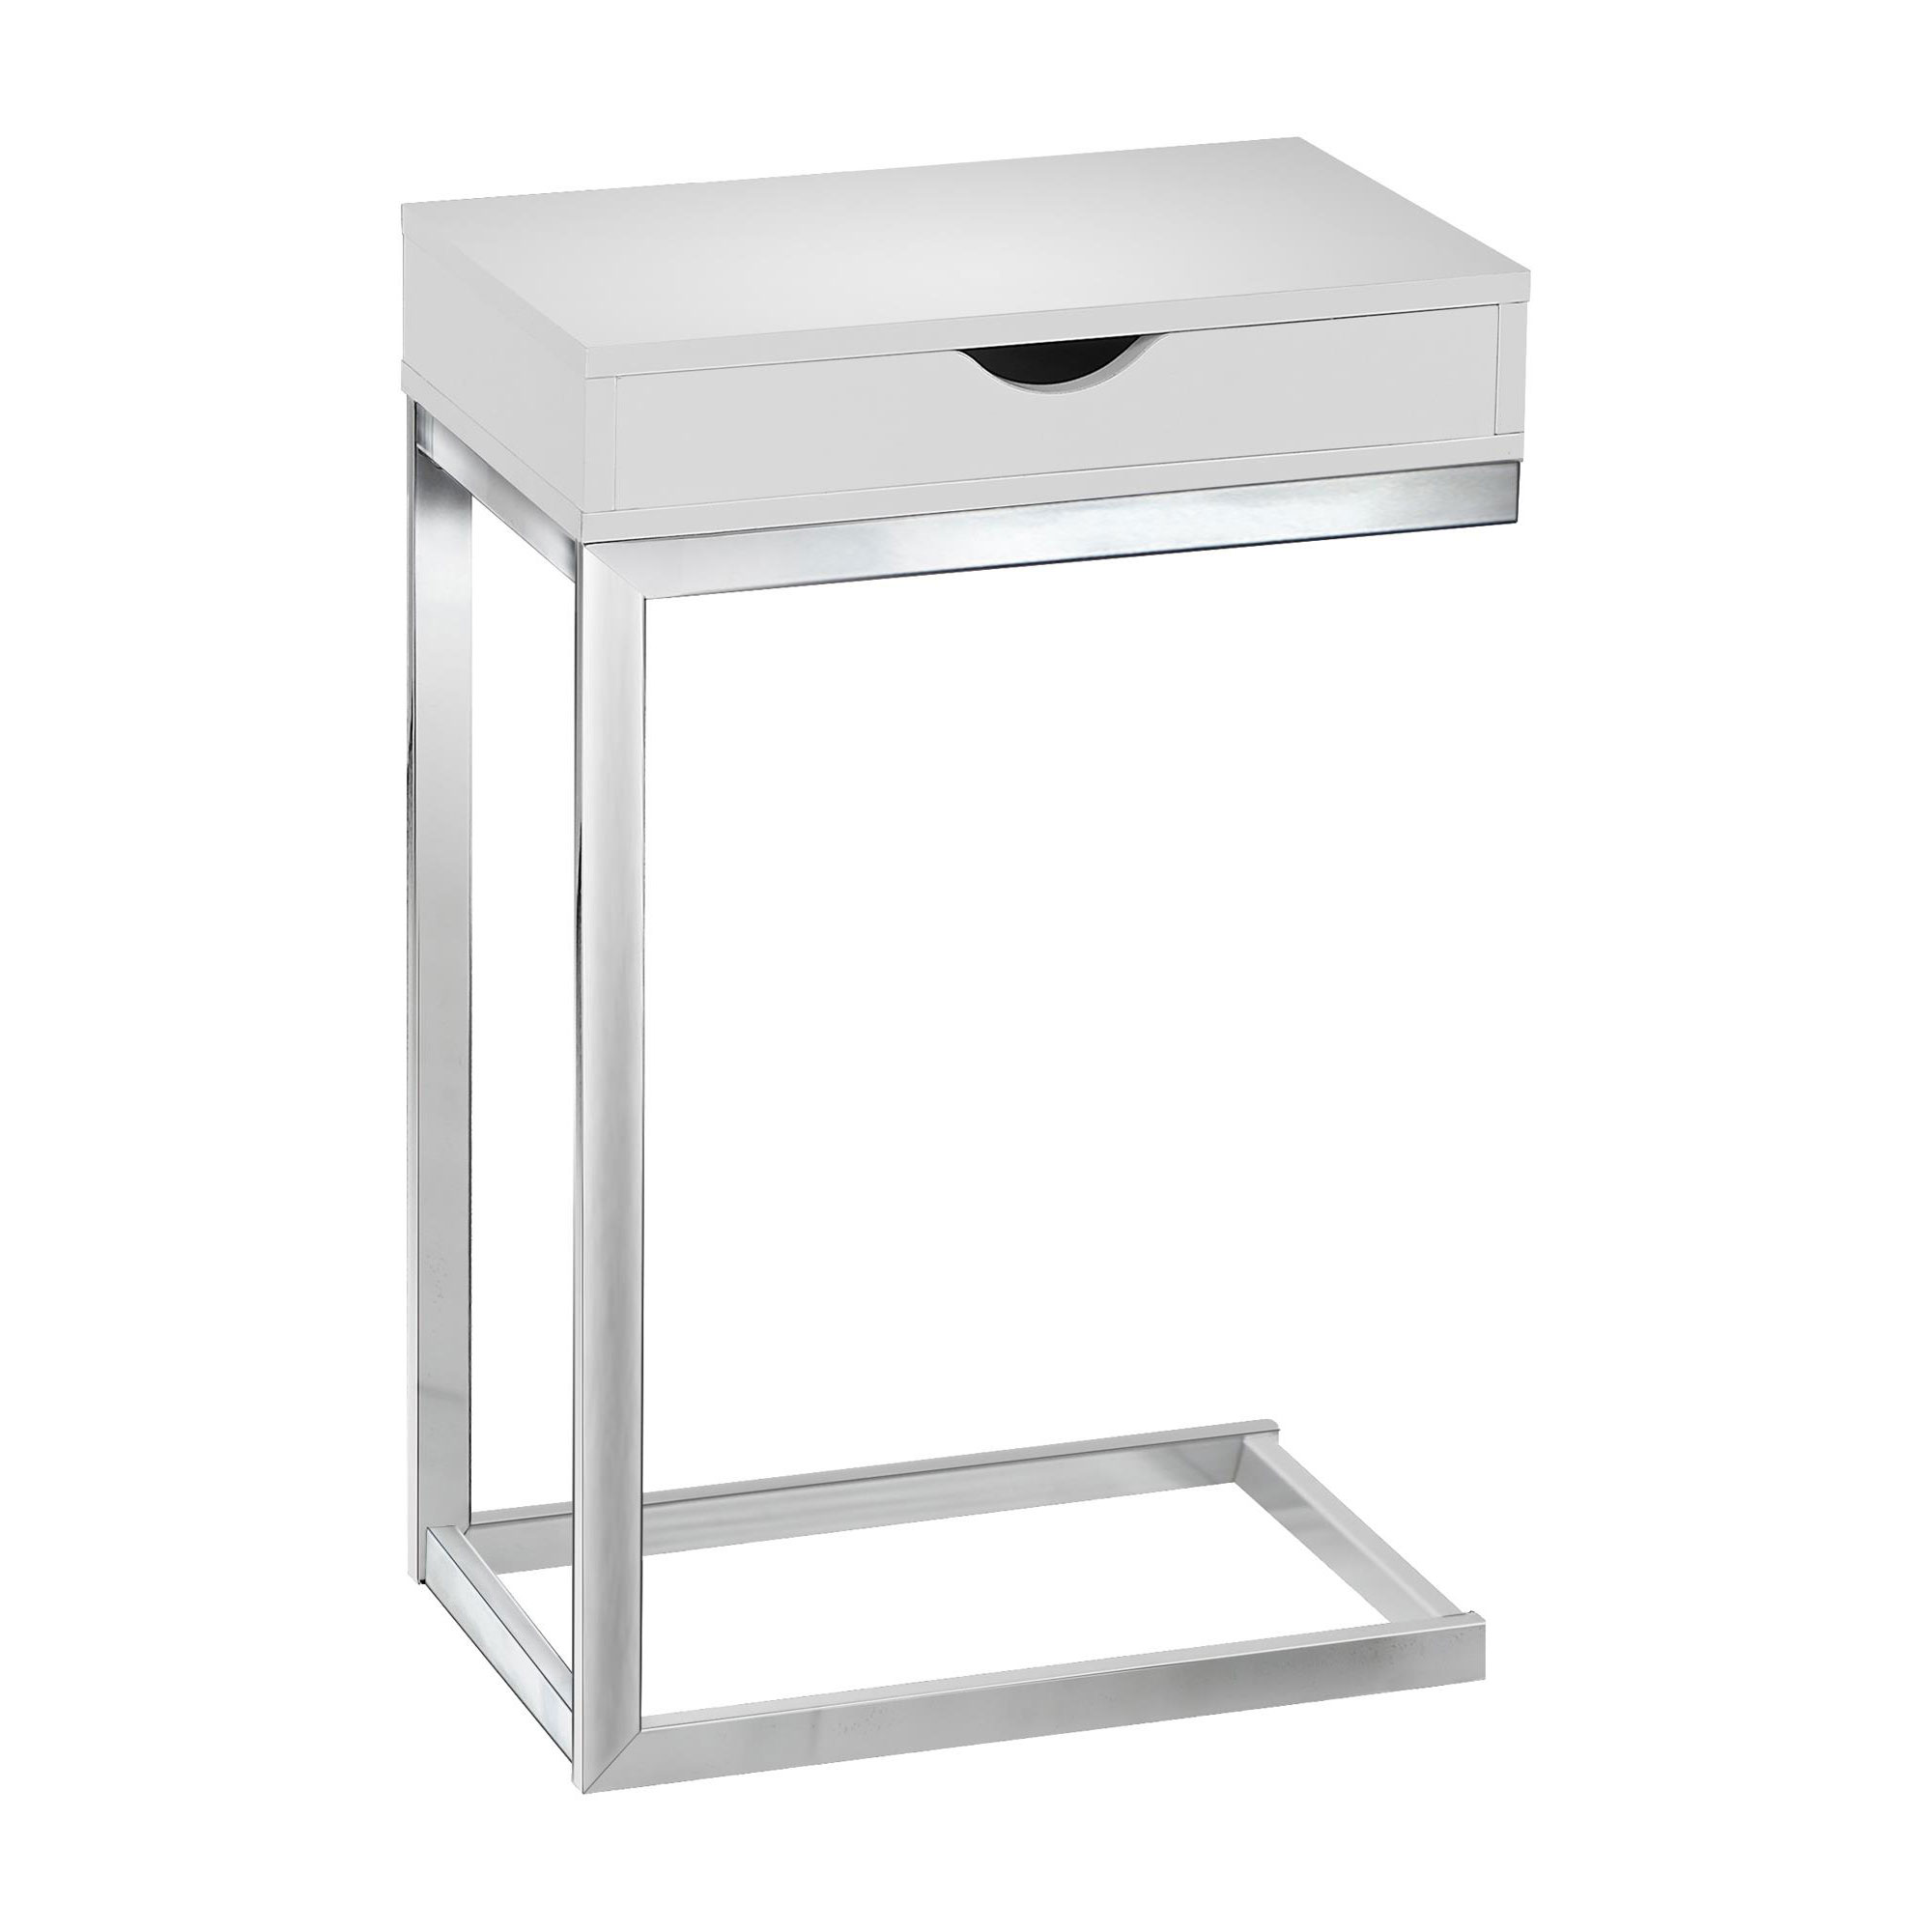 Monarch Accent Table Chrome Metal   Glossy White With A Drawer by Monarch Specialties